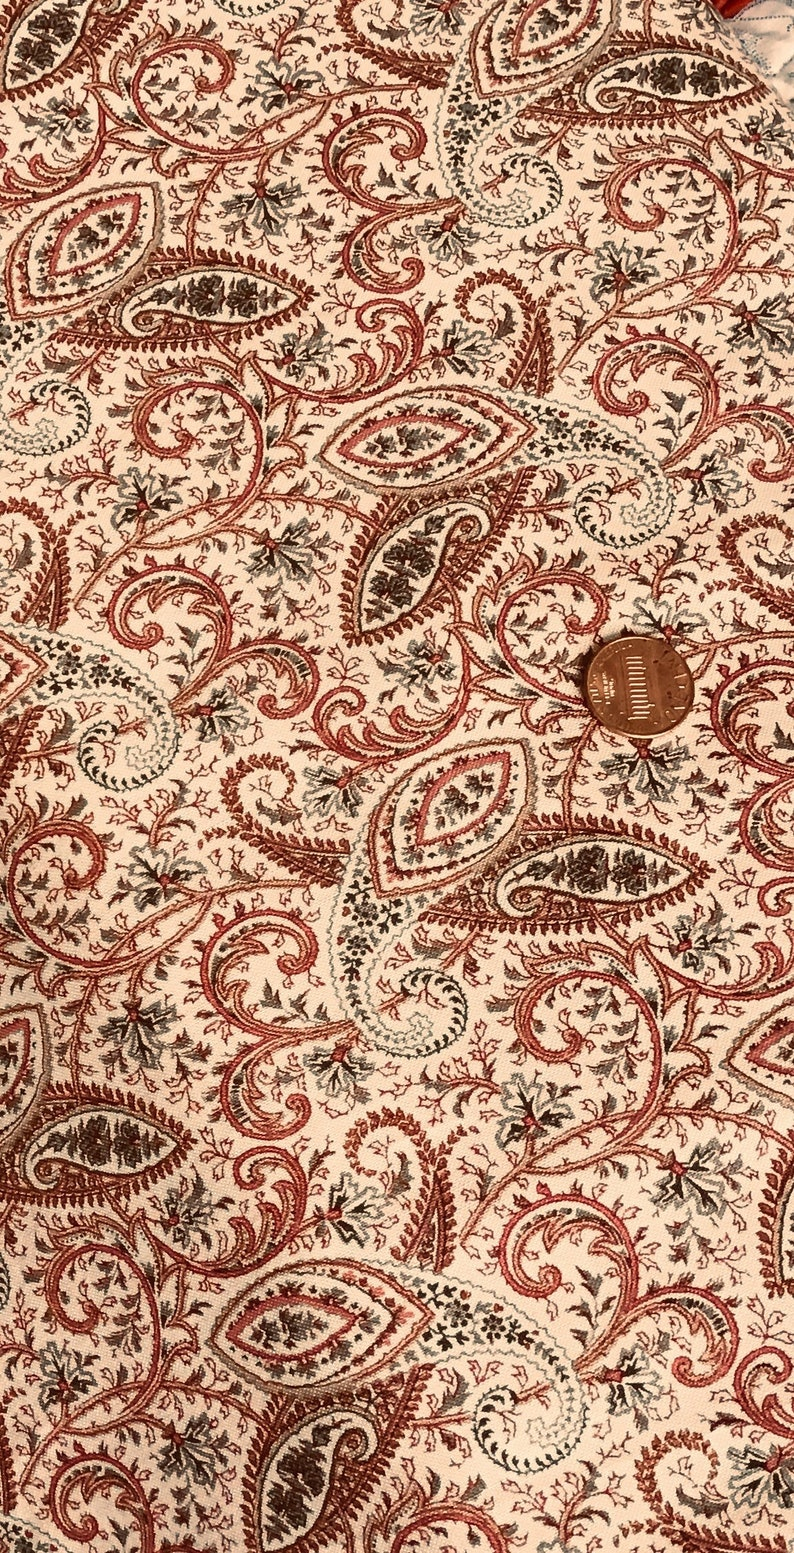 Paisley Quilt Fabric from the Garden Open Paisley Collection by Marcus Brothers Paisley on an Off White Cream Background